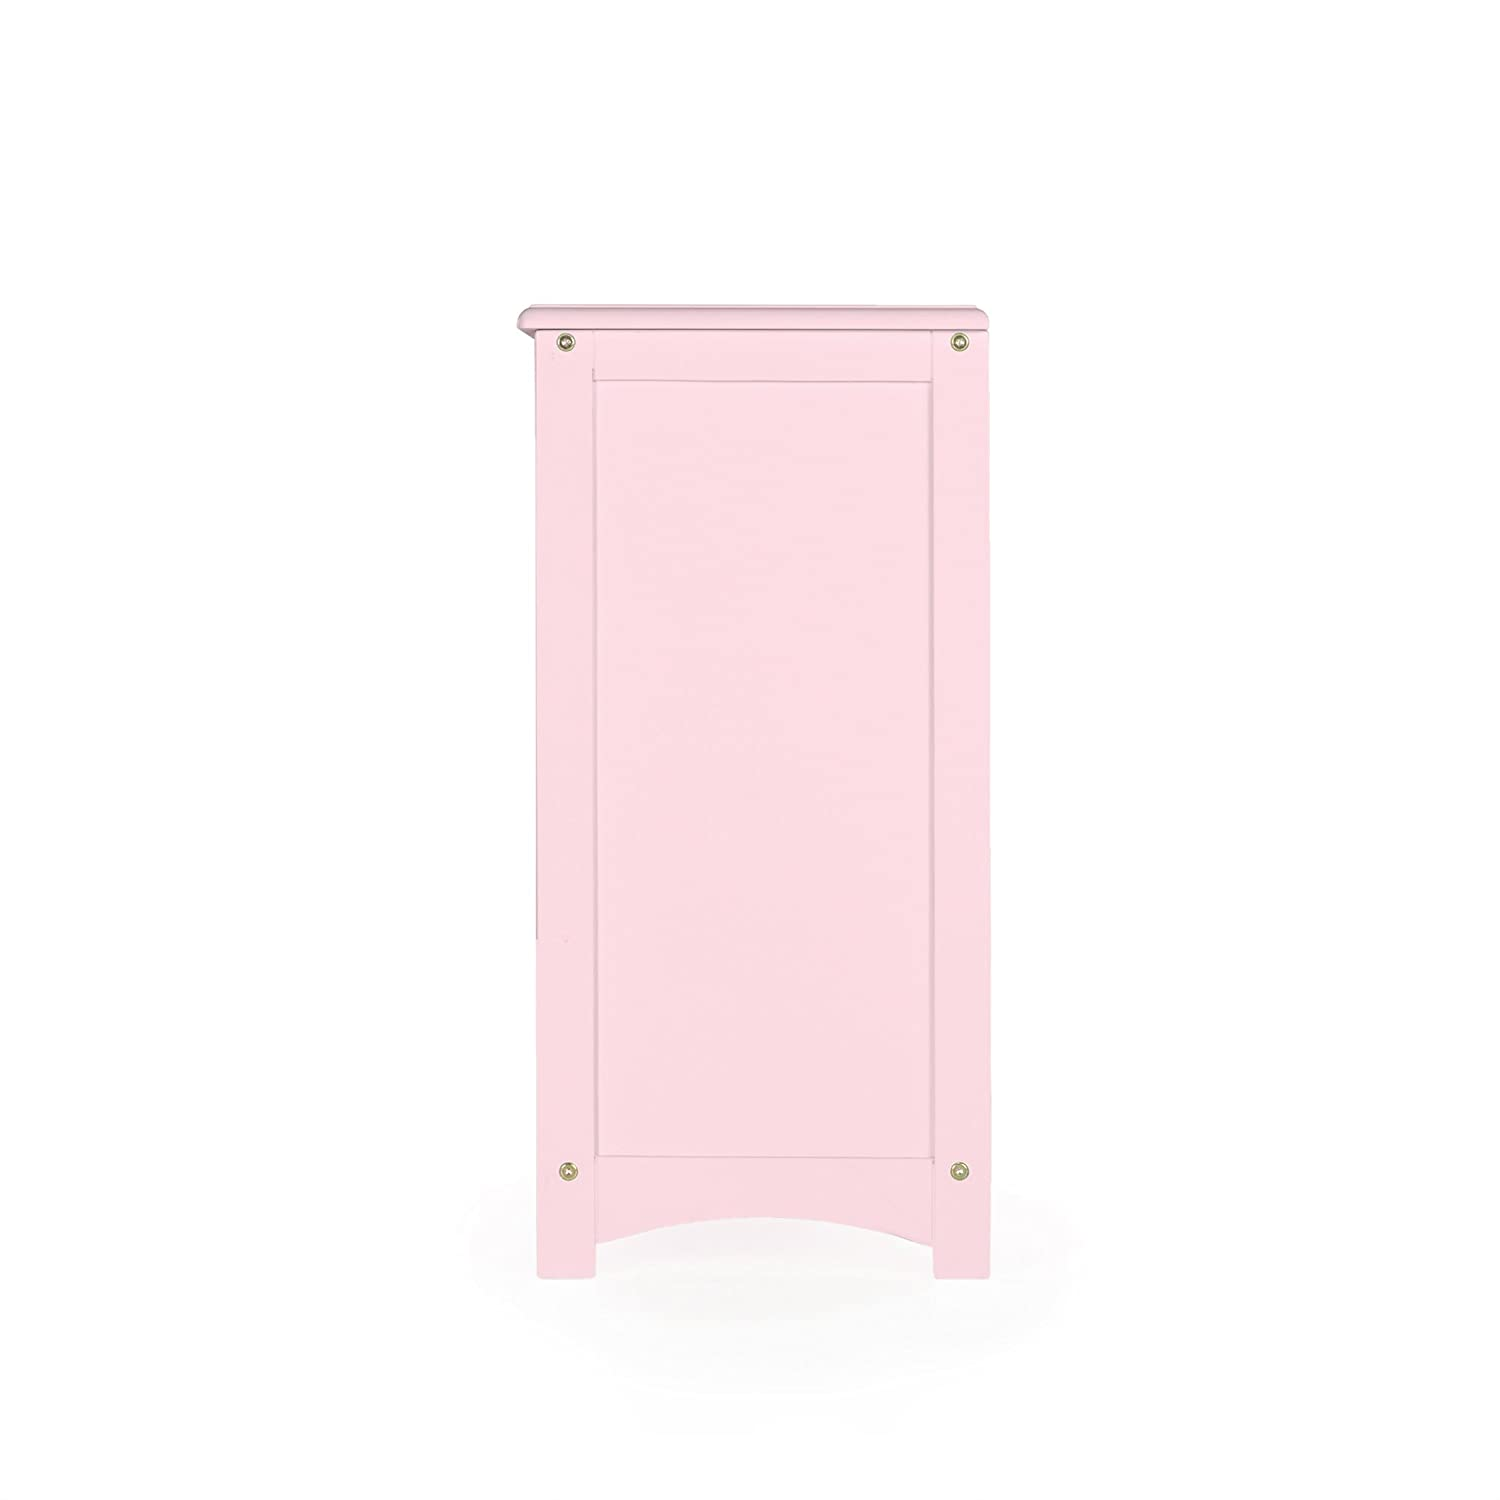 Amazoncom Guidecraft Classic Bookshelf  Pink Classroom Book Rack Storage